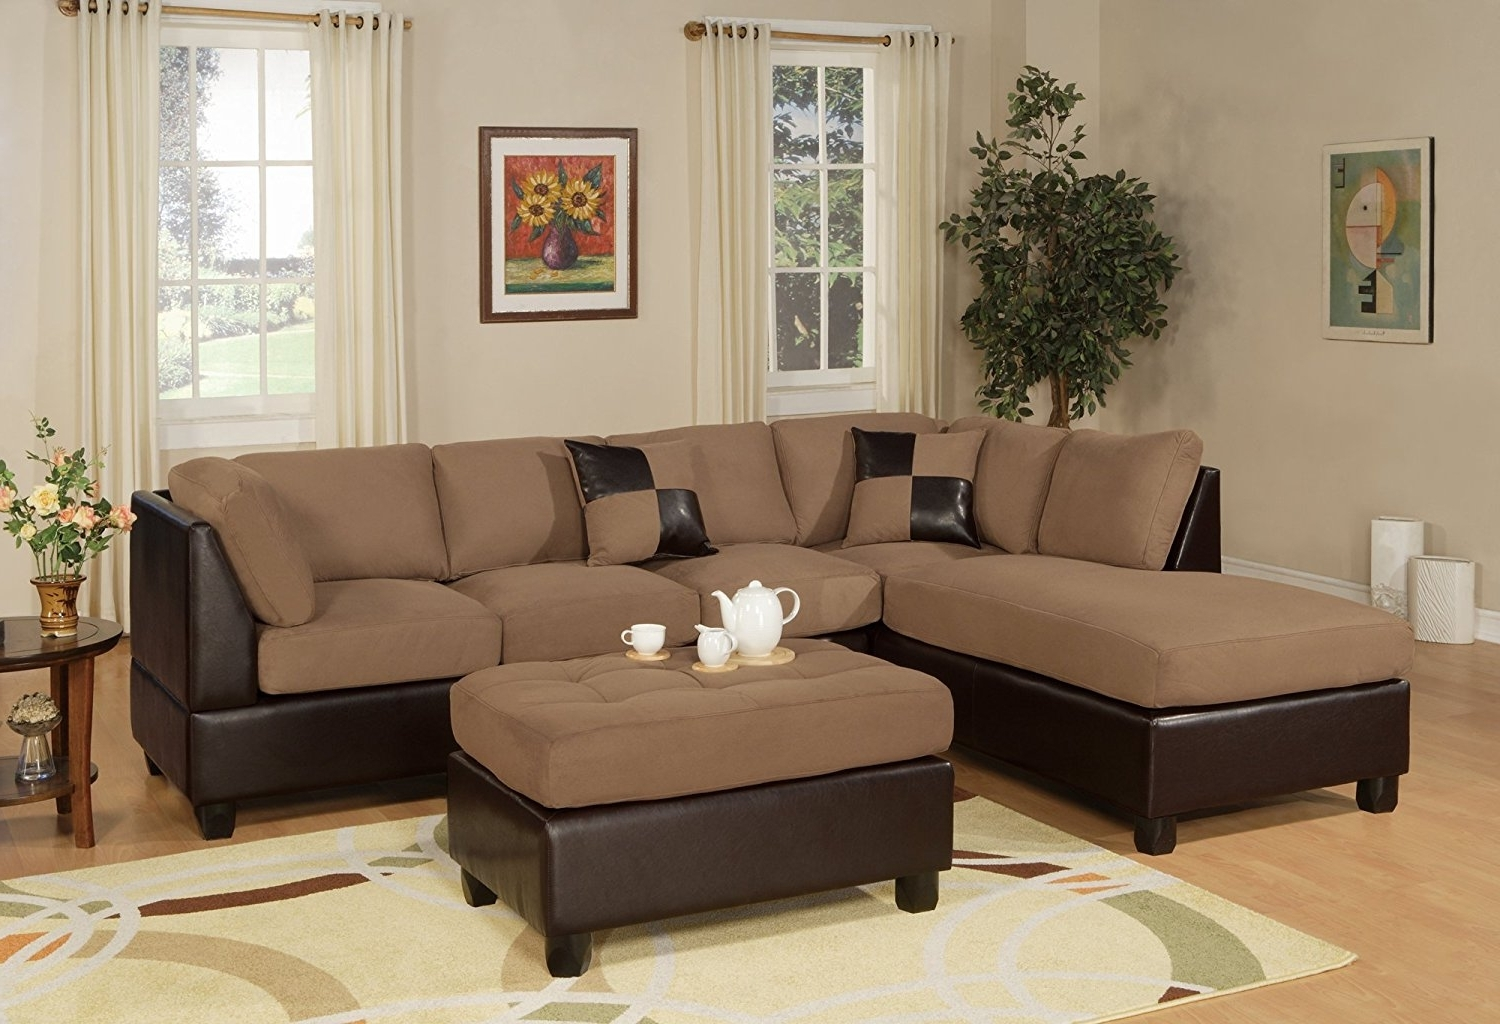 Leather And Suede Sectional Sofas For Current Amazon: Bobkona Hungtinton Microfiber/faux Leather 3 Piece (View 13 of 15)